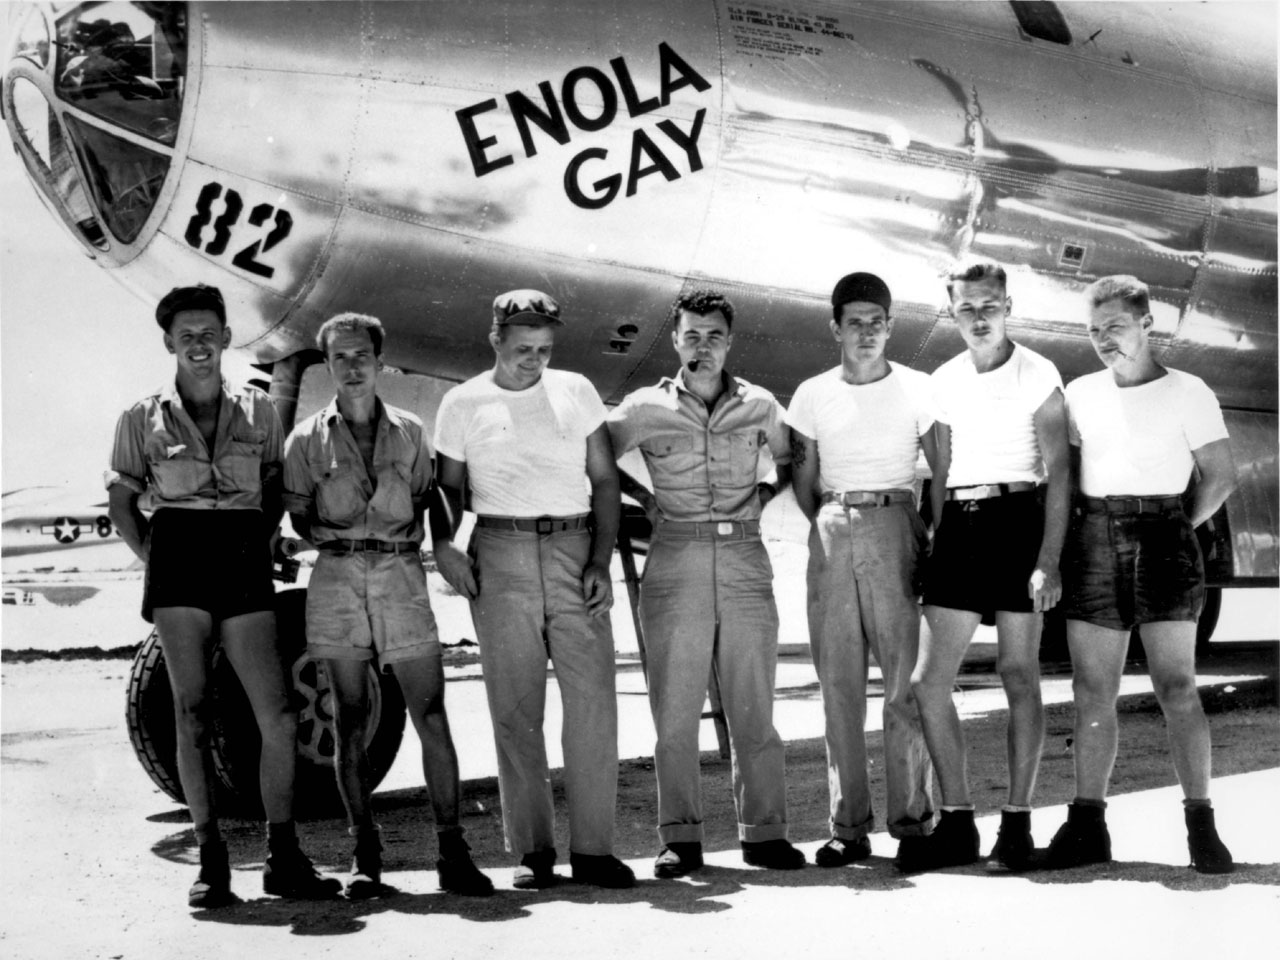 """MARIANAS: CREWS The ground crew of the B-29 """"Enola Gay"""" which atom-bombed Hiroshima, Japan.  Col. Paul W. Tibbets, the pilot is the center.  Marianas Islands."""